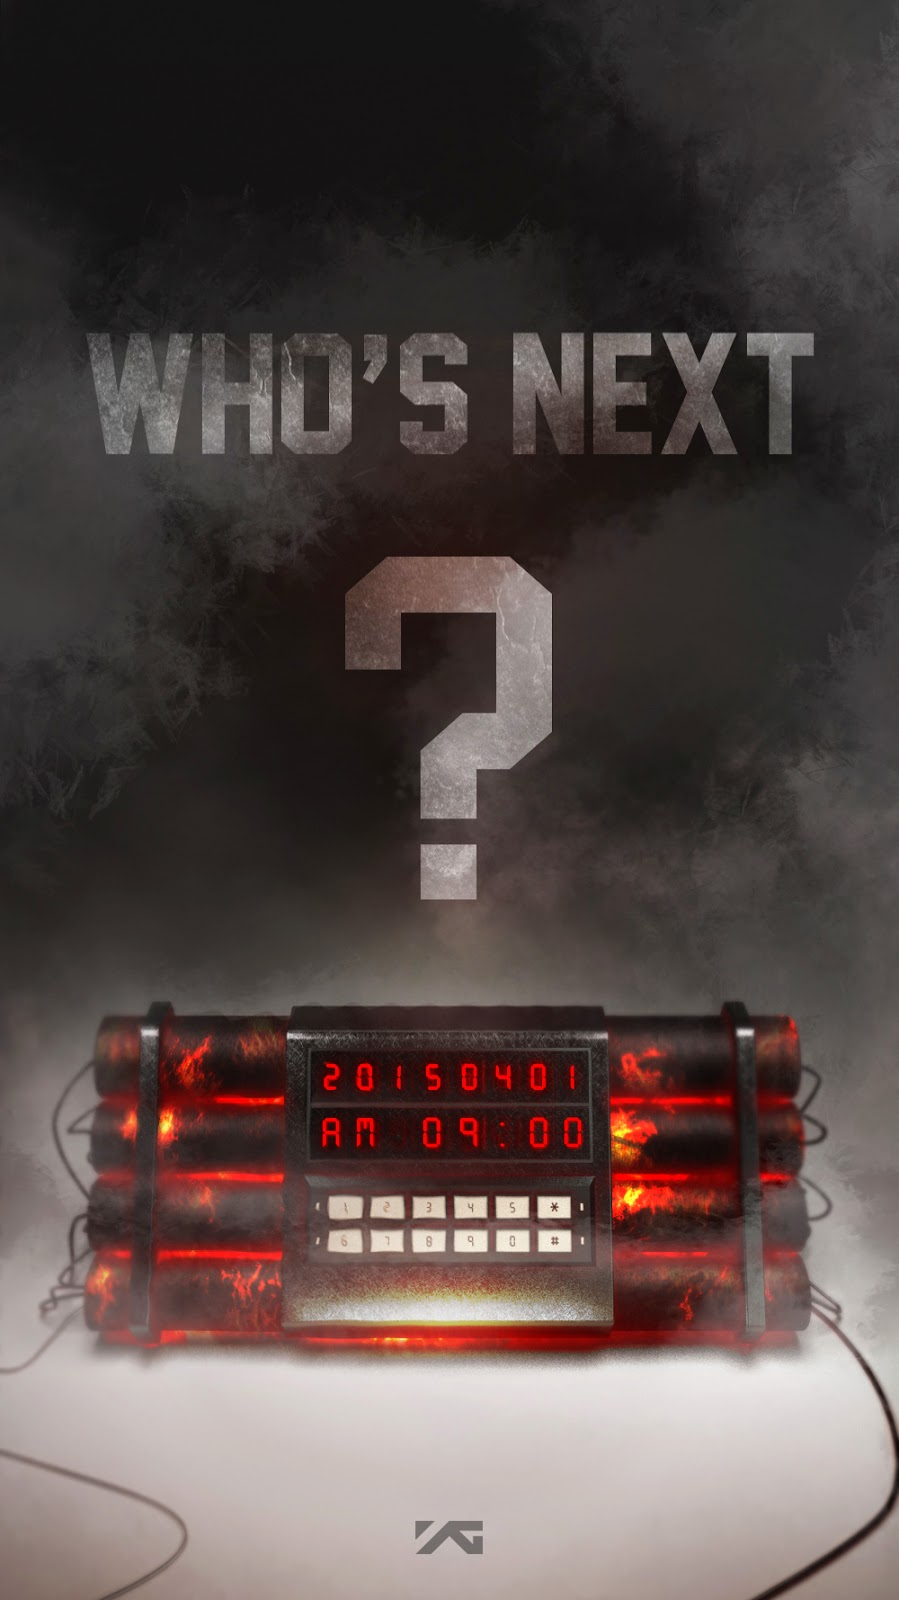 who's next? big bang big bang who's next? who's next big bang big bang who's next big bang comback G-Dragon TOP Taeyang Daesung Seungri K-pop k pop enjoy korea hui YG big bang